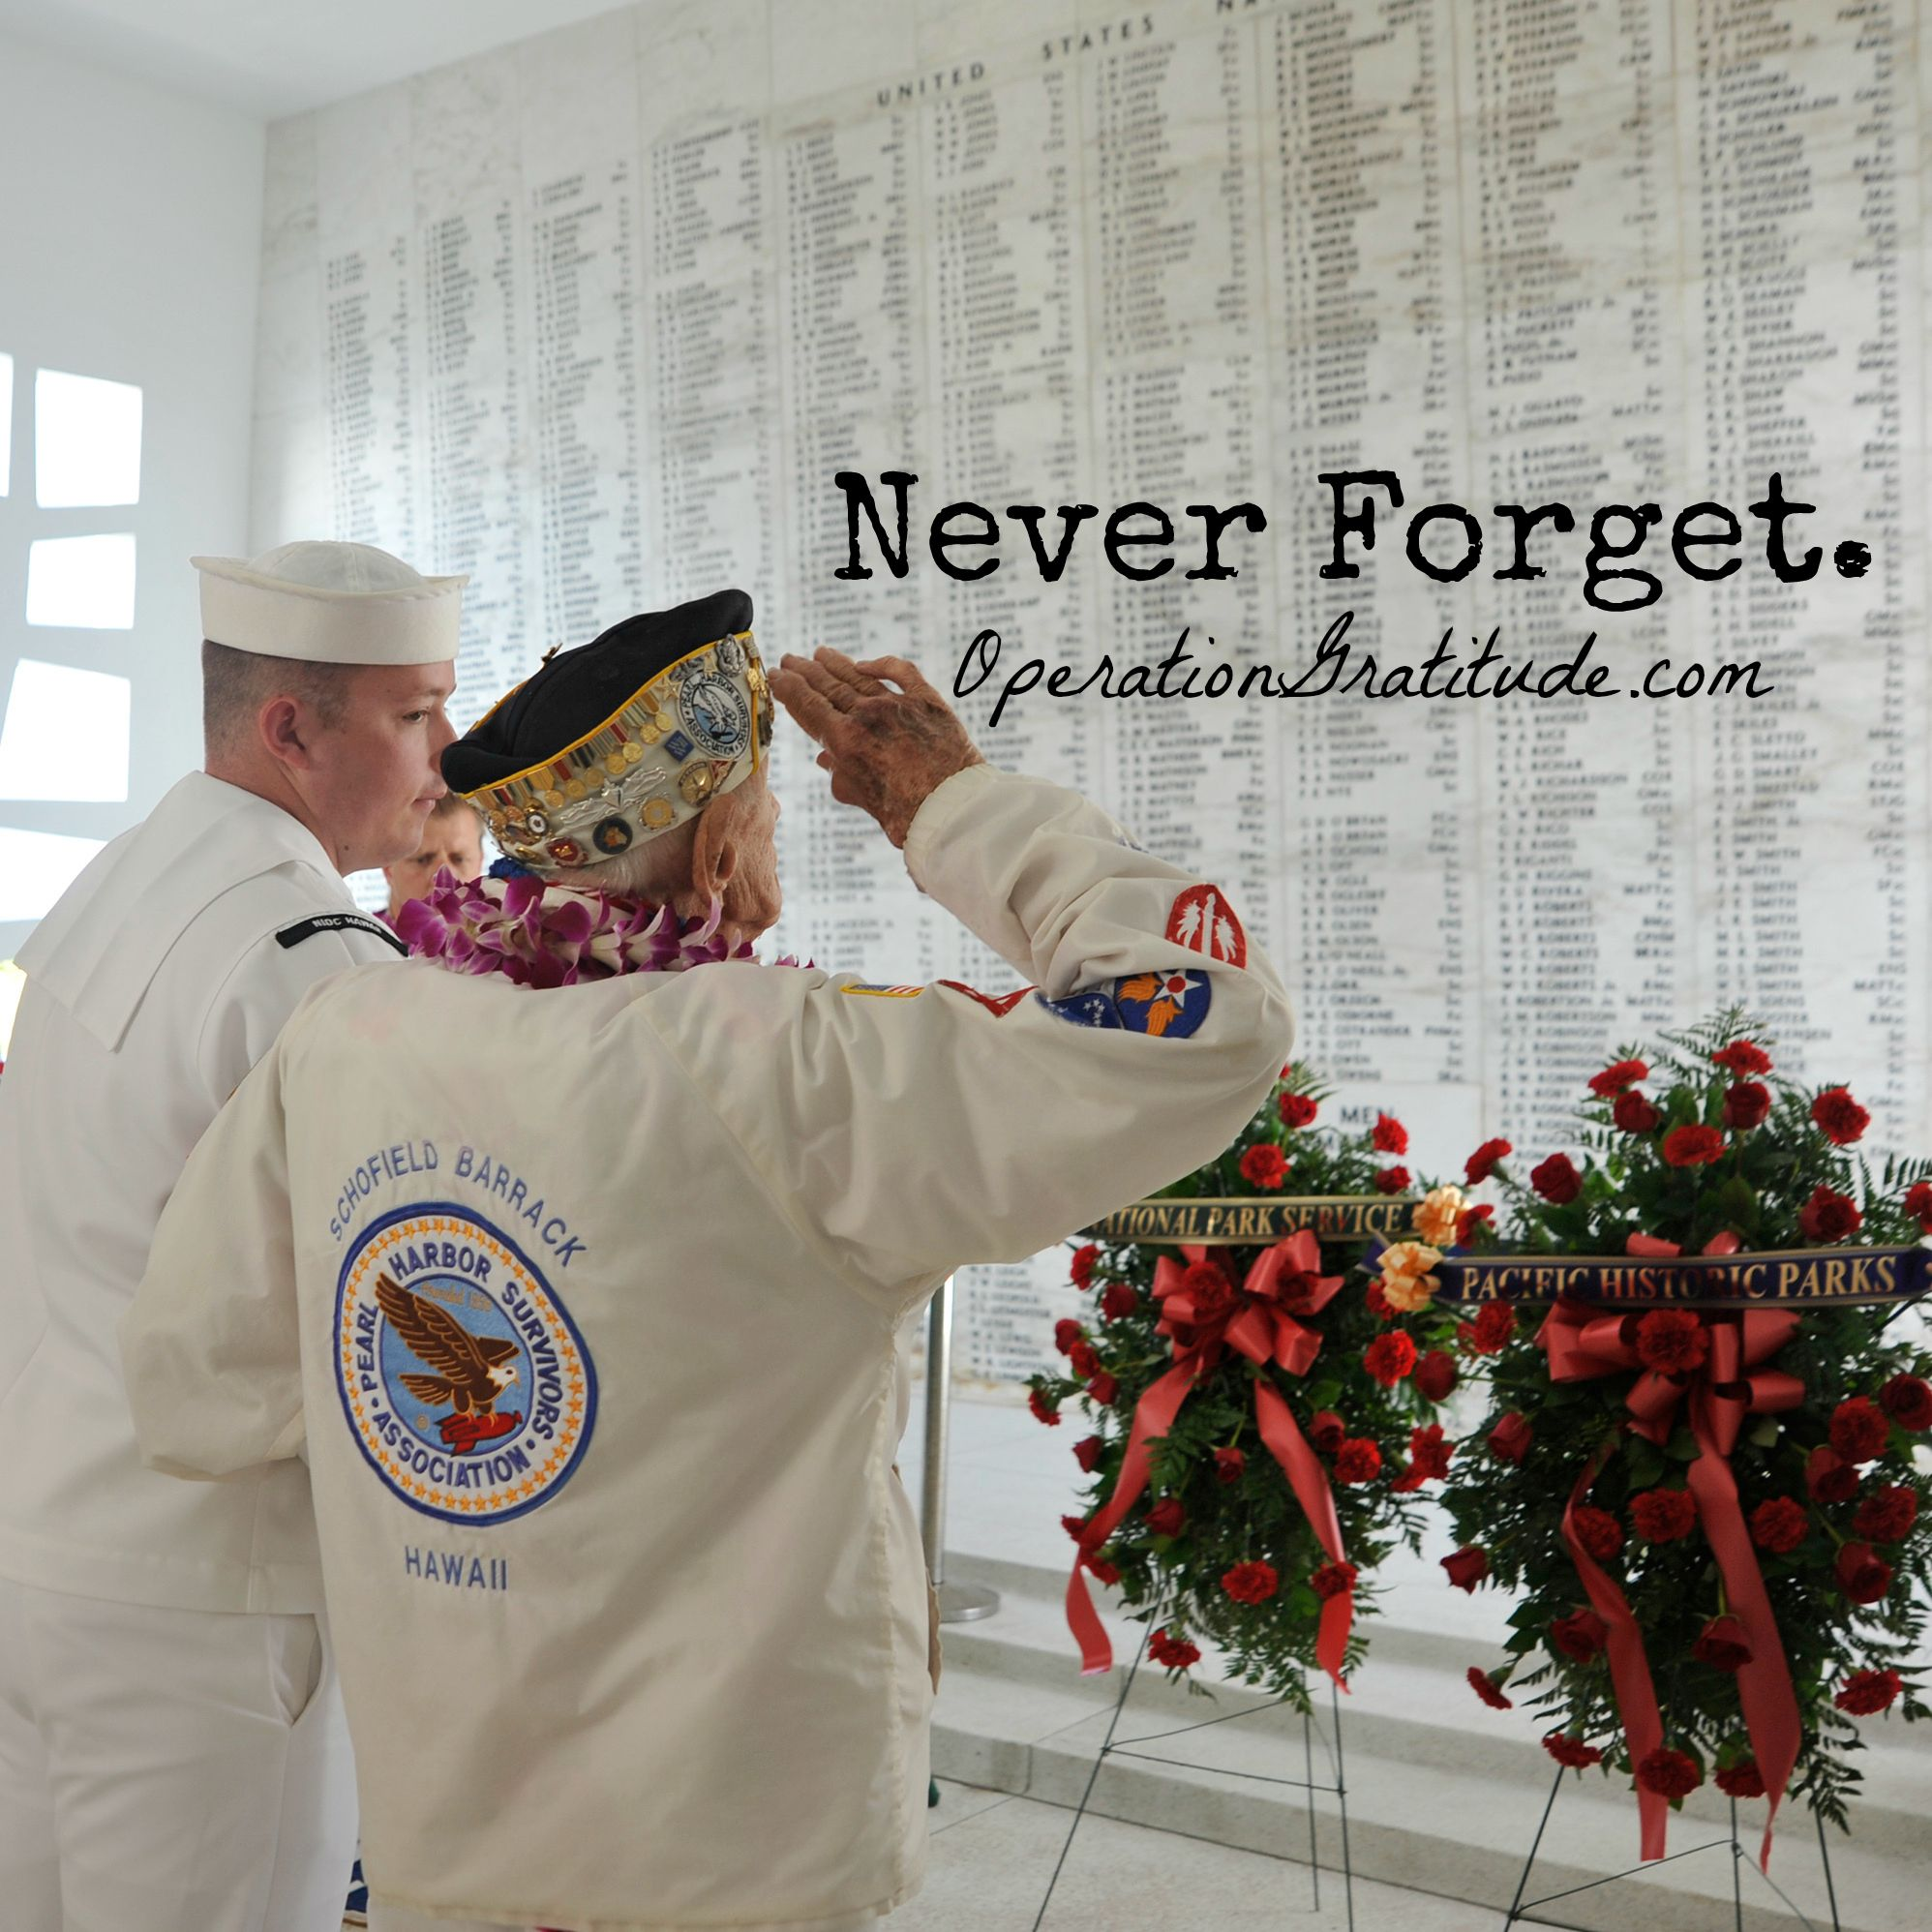 Pearl Harbor survivor Allen Bodenlos renders honors at the USS Arizona Memorial during the 72nd anniversary Pearl Harbor Day commemoration. Pearl Harbor survivors and distinguished guests visited the memorial for the presentation of wreaths. More than 2,500 guests, including Pearl Harbor survivors and other veterans, attended the National Park Service and U.S. Navy-hosted joint memorial ceremony at the World War II Valor in the Pacific National Monument. (U.S. Navy photo by MCS Johans…